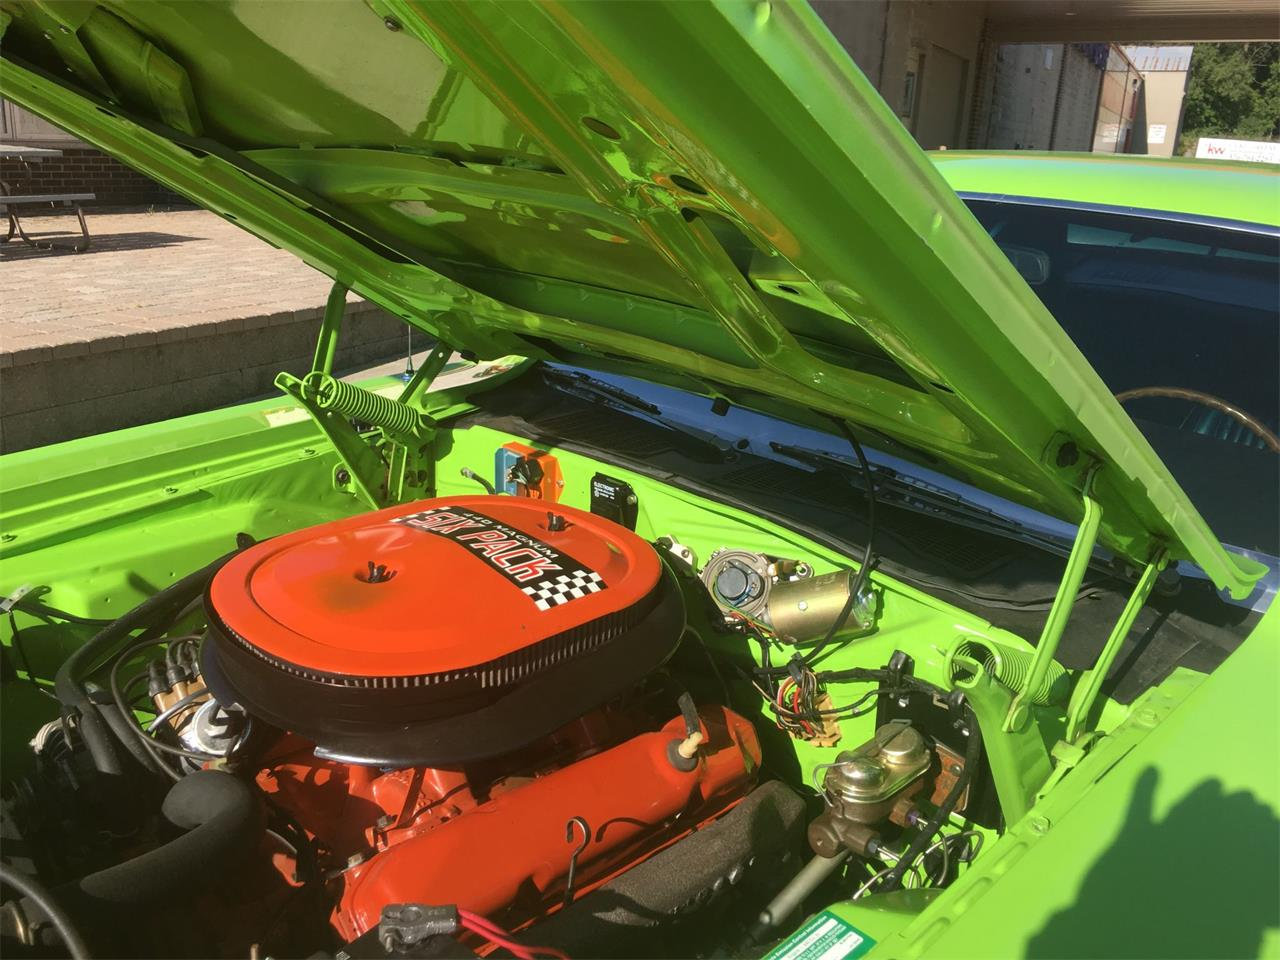 1970 Dodge Challenger R/T for sale in Annandale, MN – photo 74